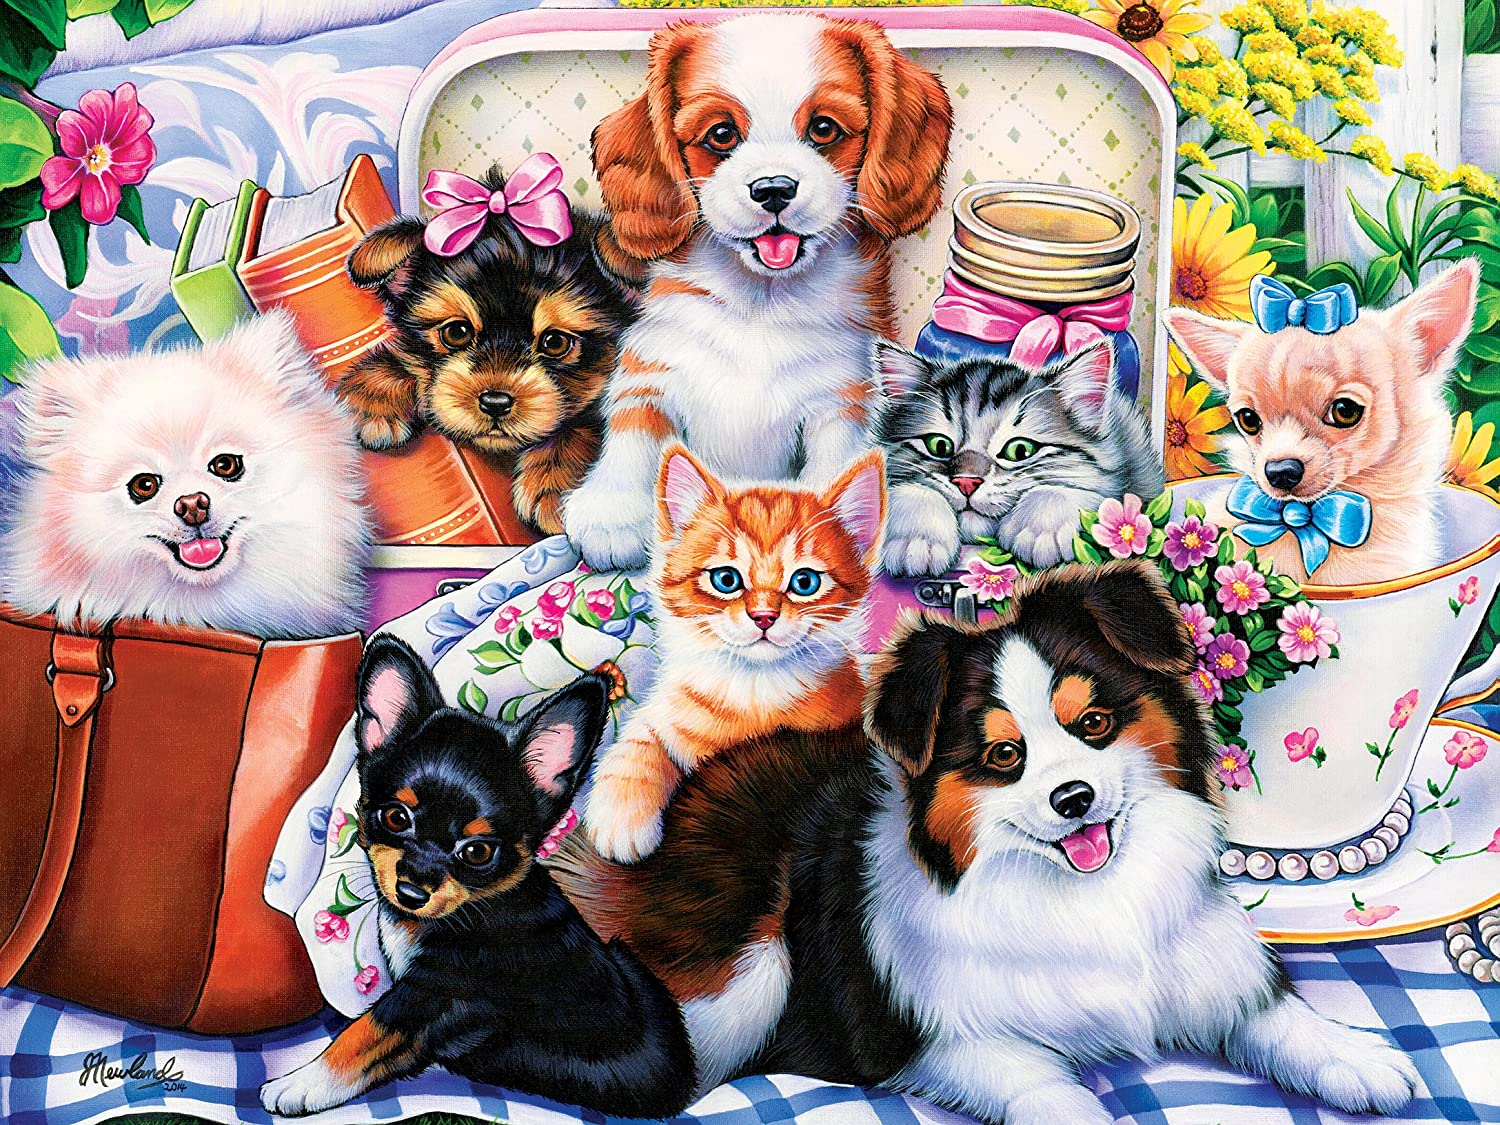 Cardinal Kids 48pc Adorable Kittens and Puppies Puzzles